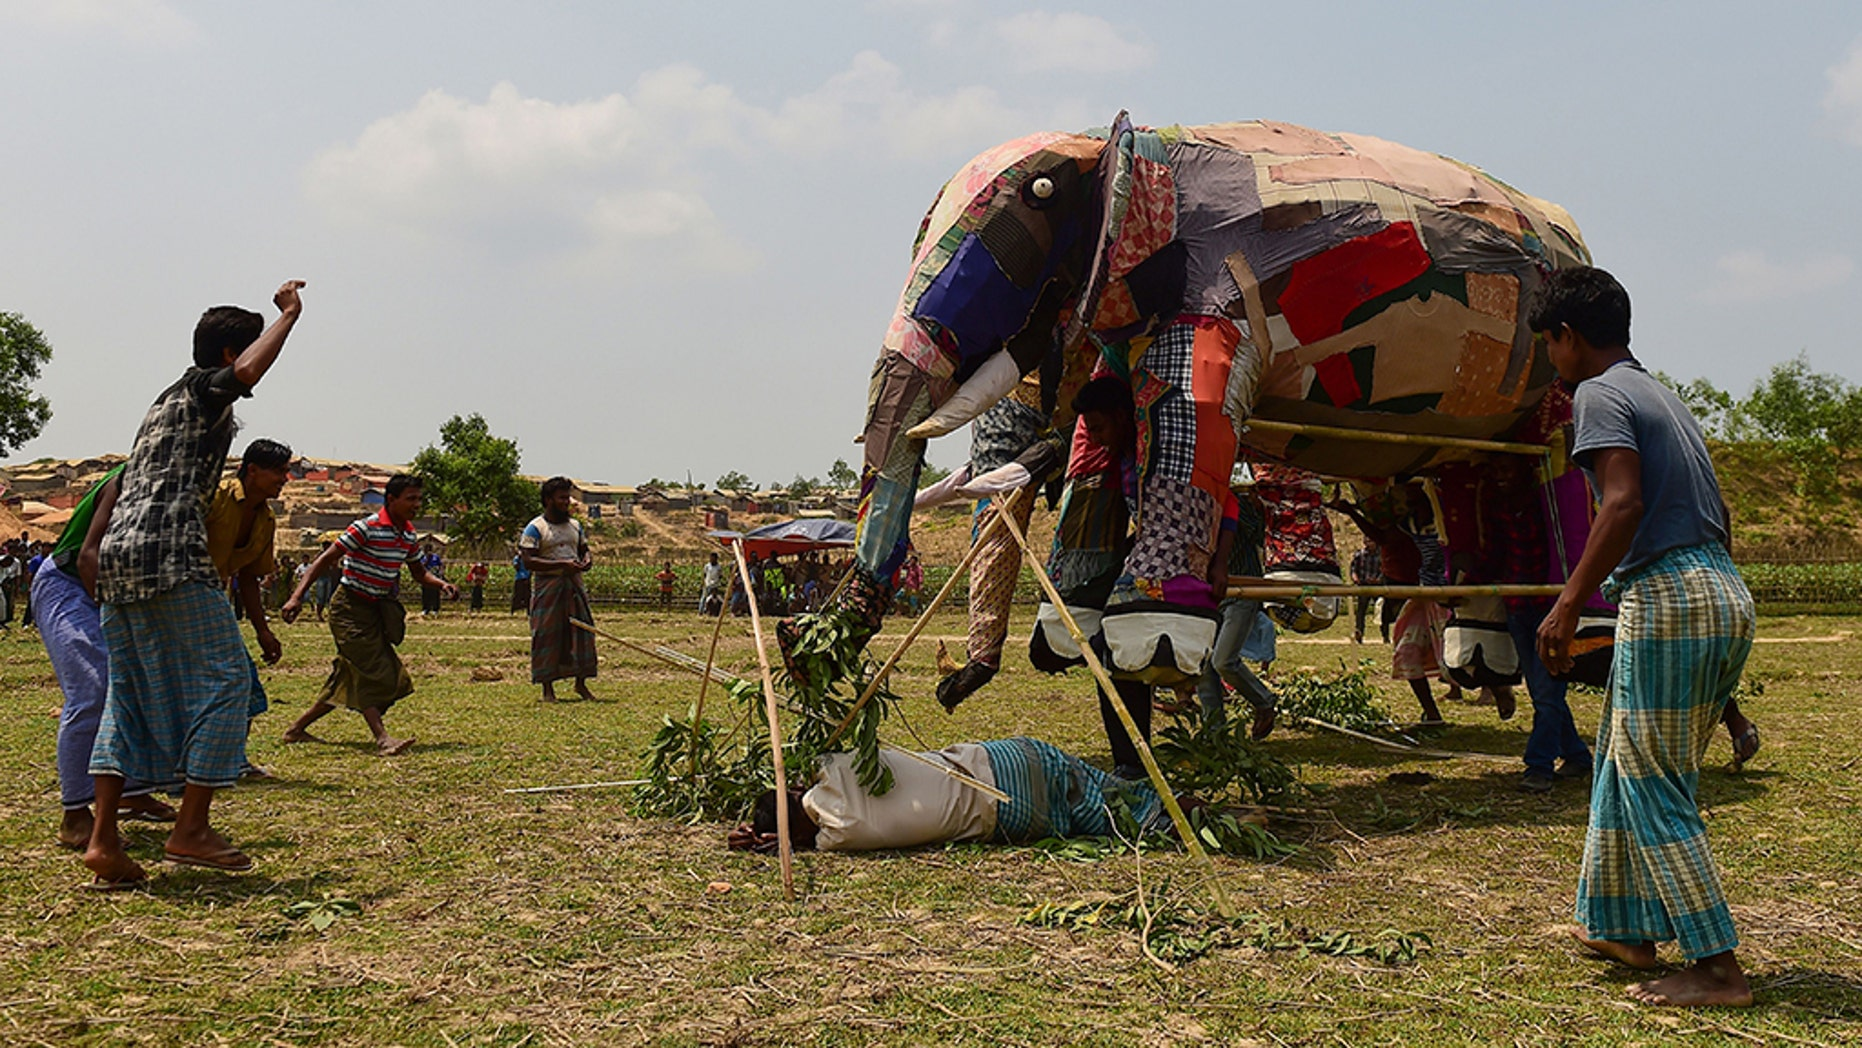 This photo taken on April 7, 2018 shows Rohingya refugee attending a demonstration of elephant resistance arranged by the UNHCR and IUCN at the Kutupalong refugee camp in Ukhia. The purpose of the training day is sobering - a dozen Rohingya have been killed by wild elephants whose habitat has been consumed by Kutupalong refugee camp.